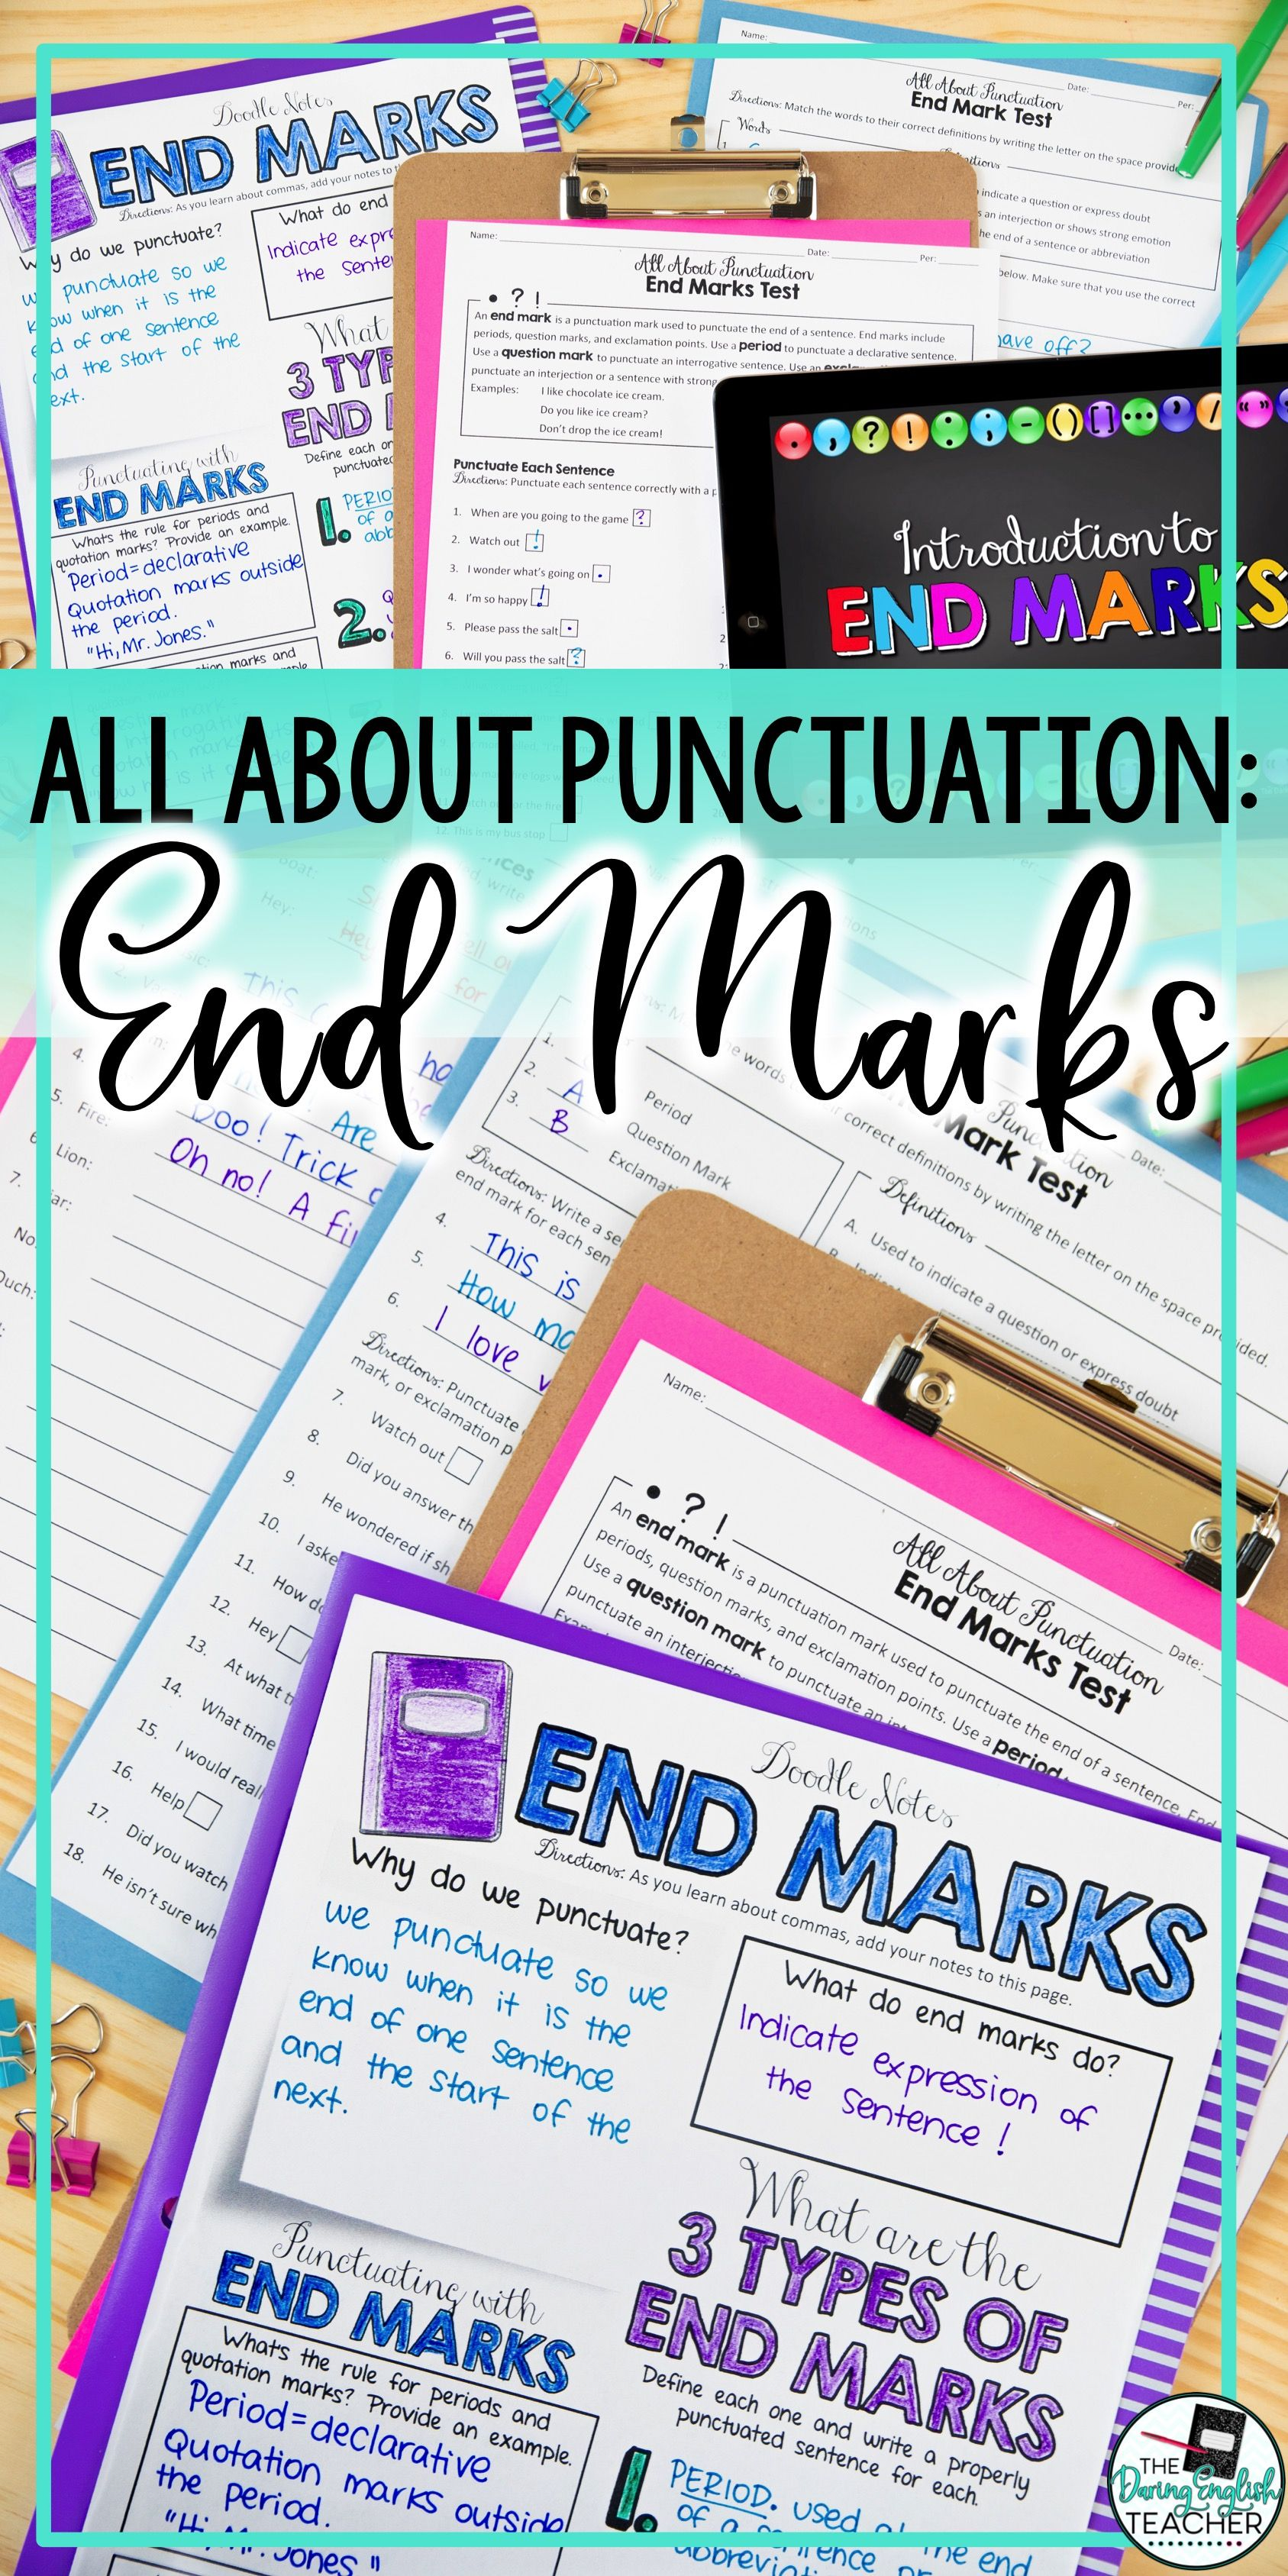 Punctuation Teaching Unit End Marks Period Exclamation